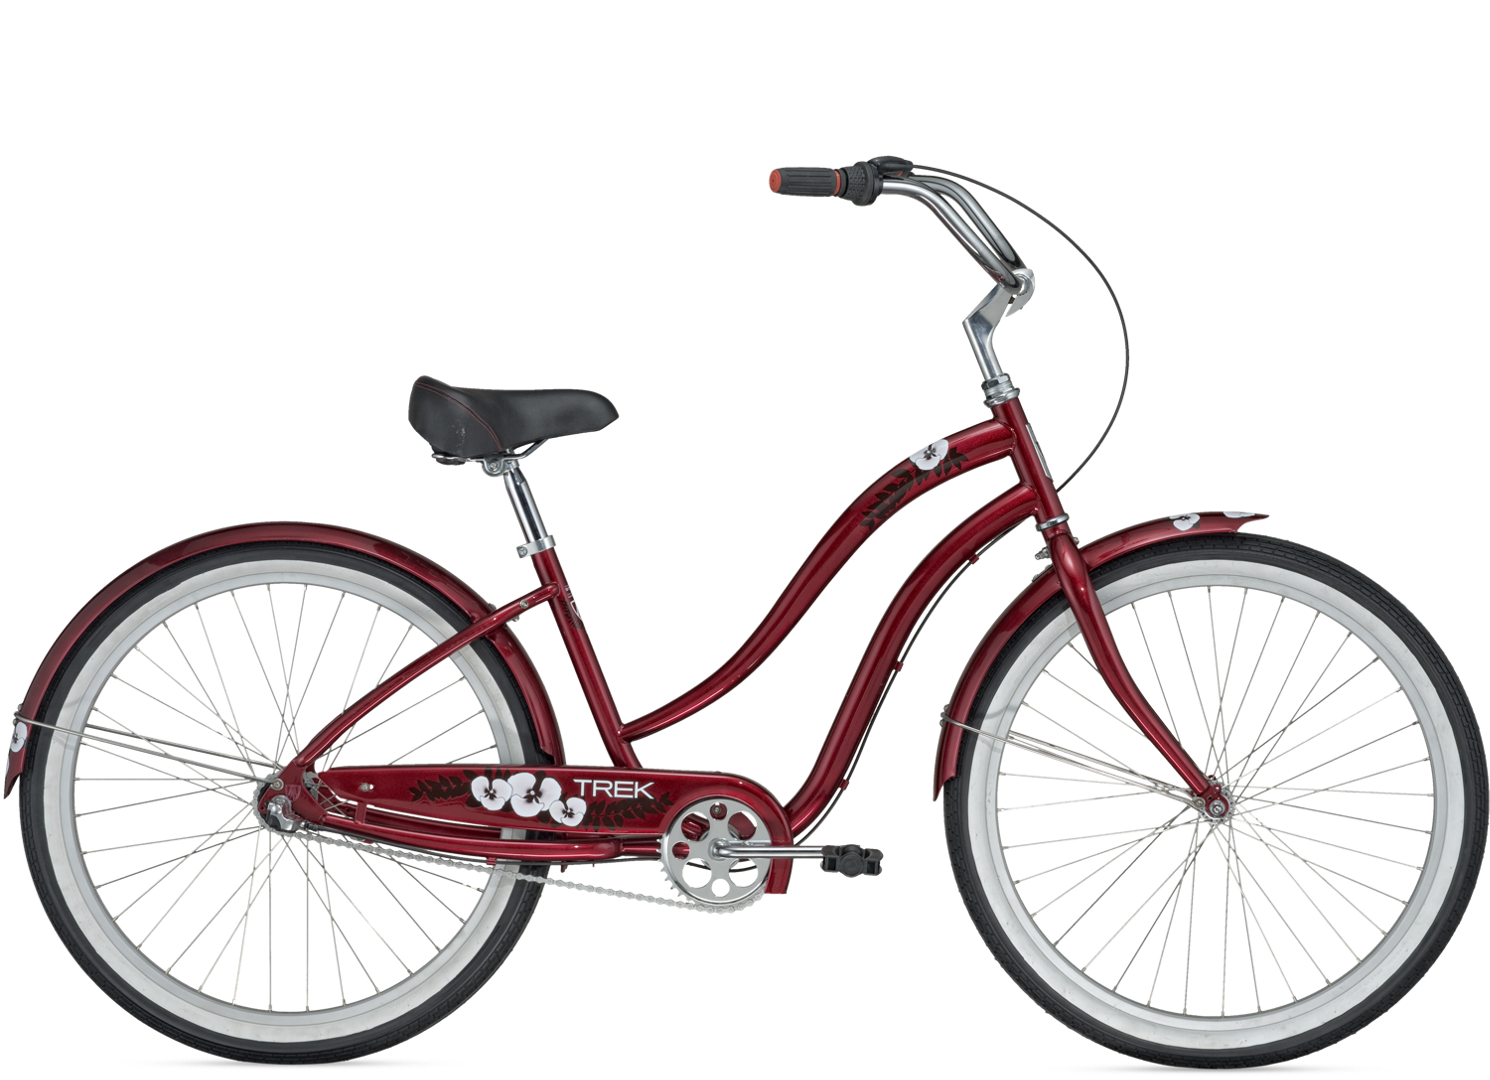 Bicycle png. Bicycles images free download